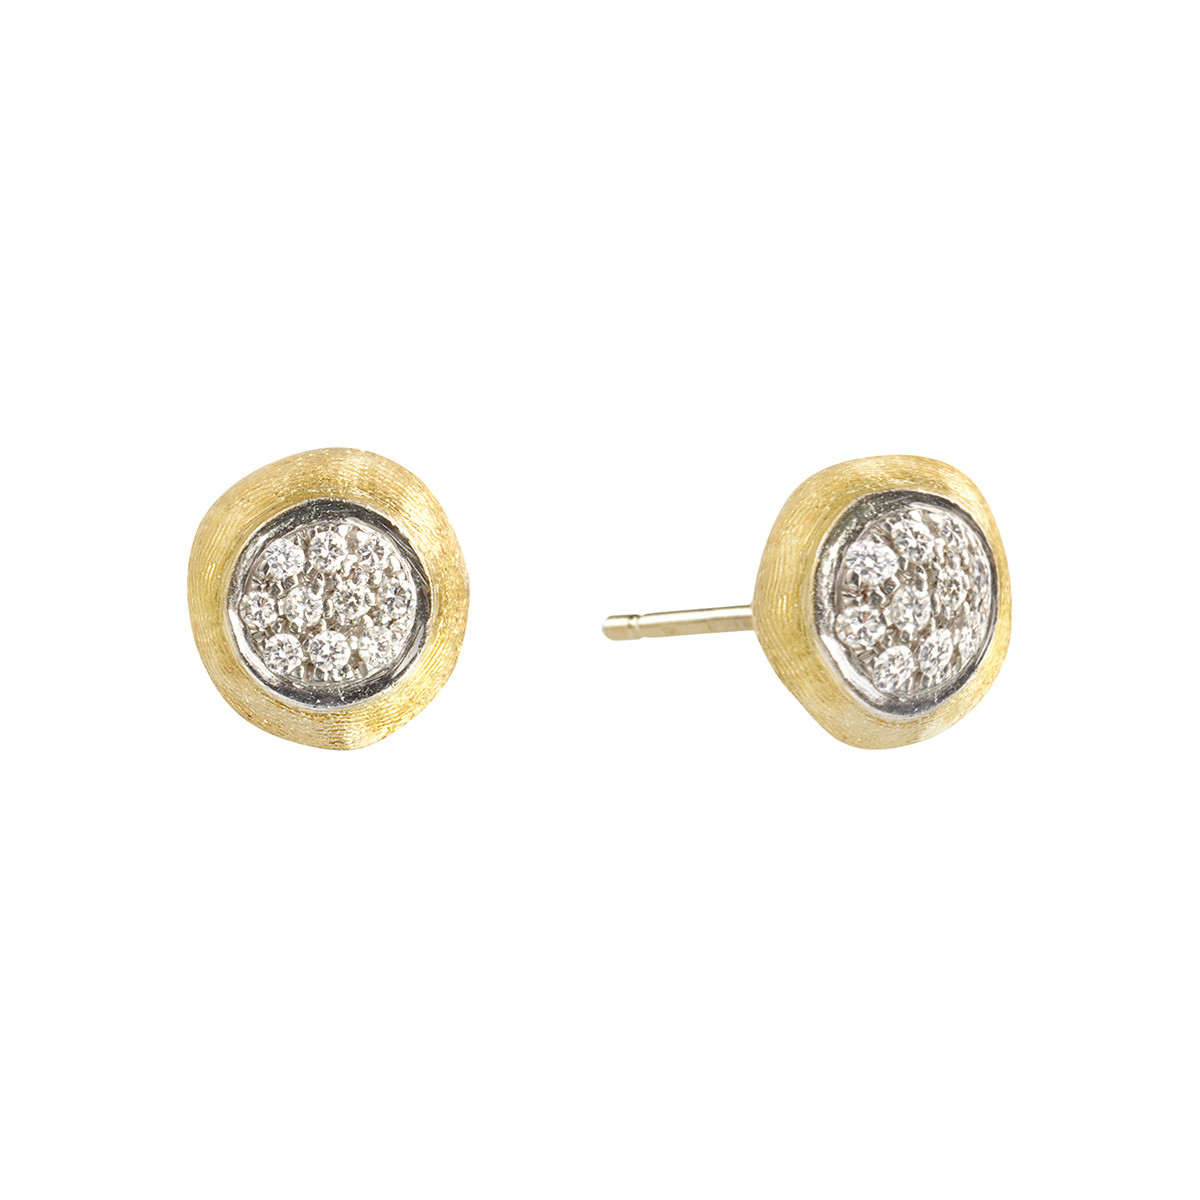 "18k Yellow Gold & Diamond ""Delicati"" Stud Earrings"